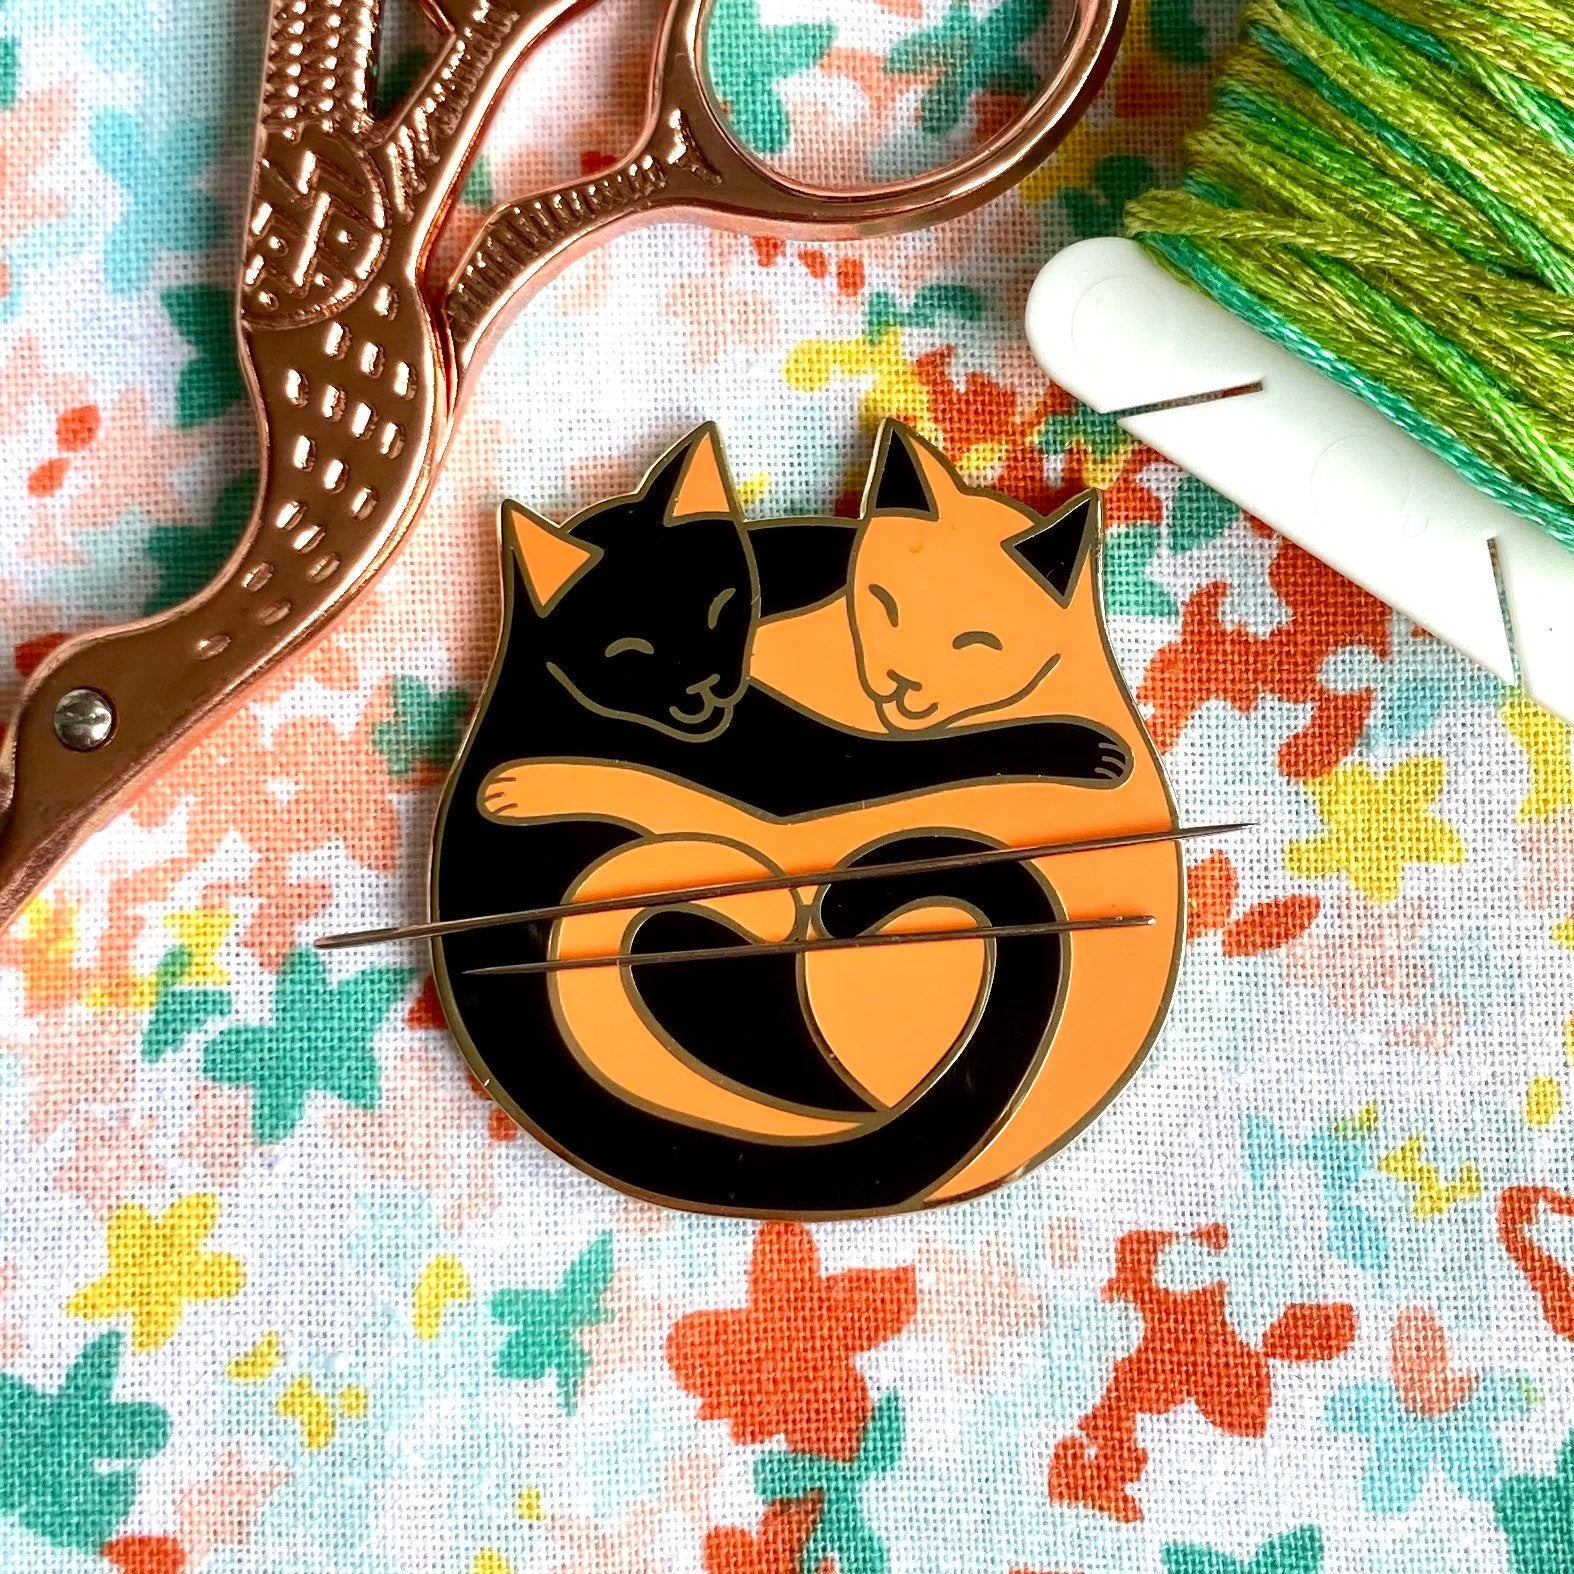 Magnetic Needleminder - Cuddling Cats Black and Orange 40mm Hard Enamel Pin Converted to Needle Minder with Very Strong Neodymium Magnets